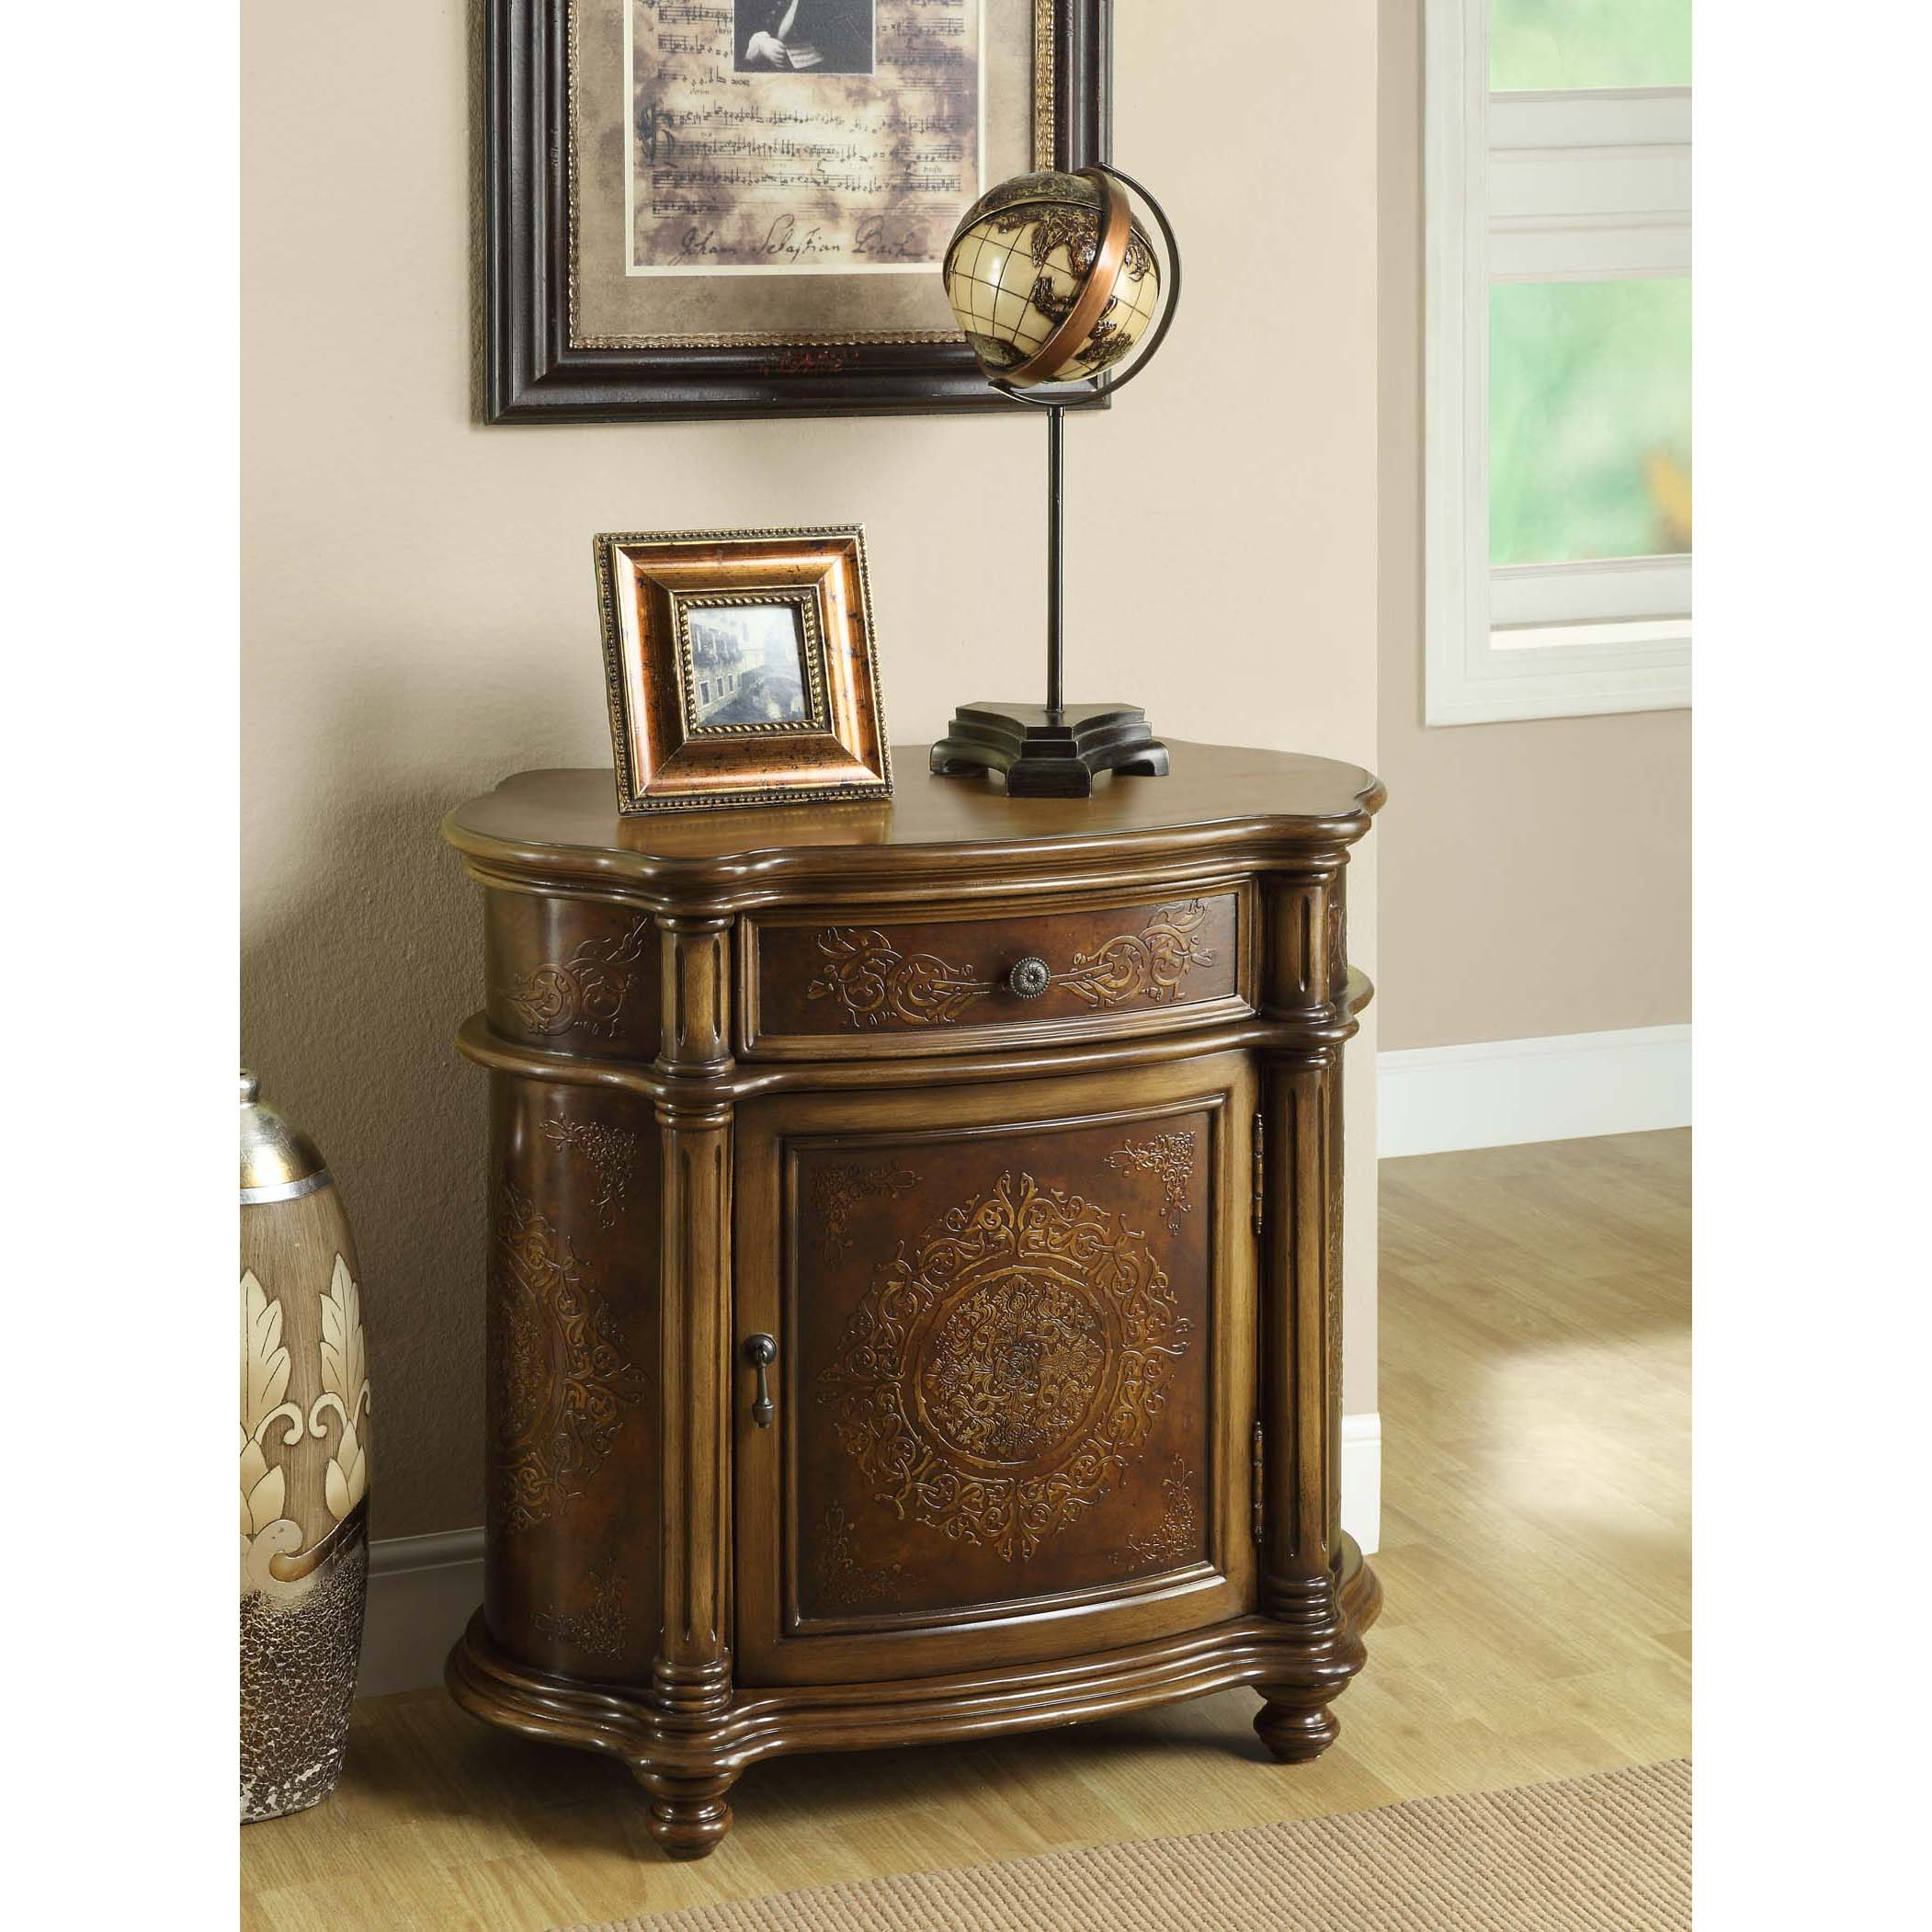 Captivating Bombay Light Brown Engraved 1 Drawer Cabinet